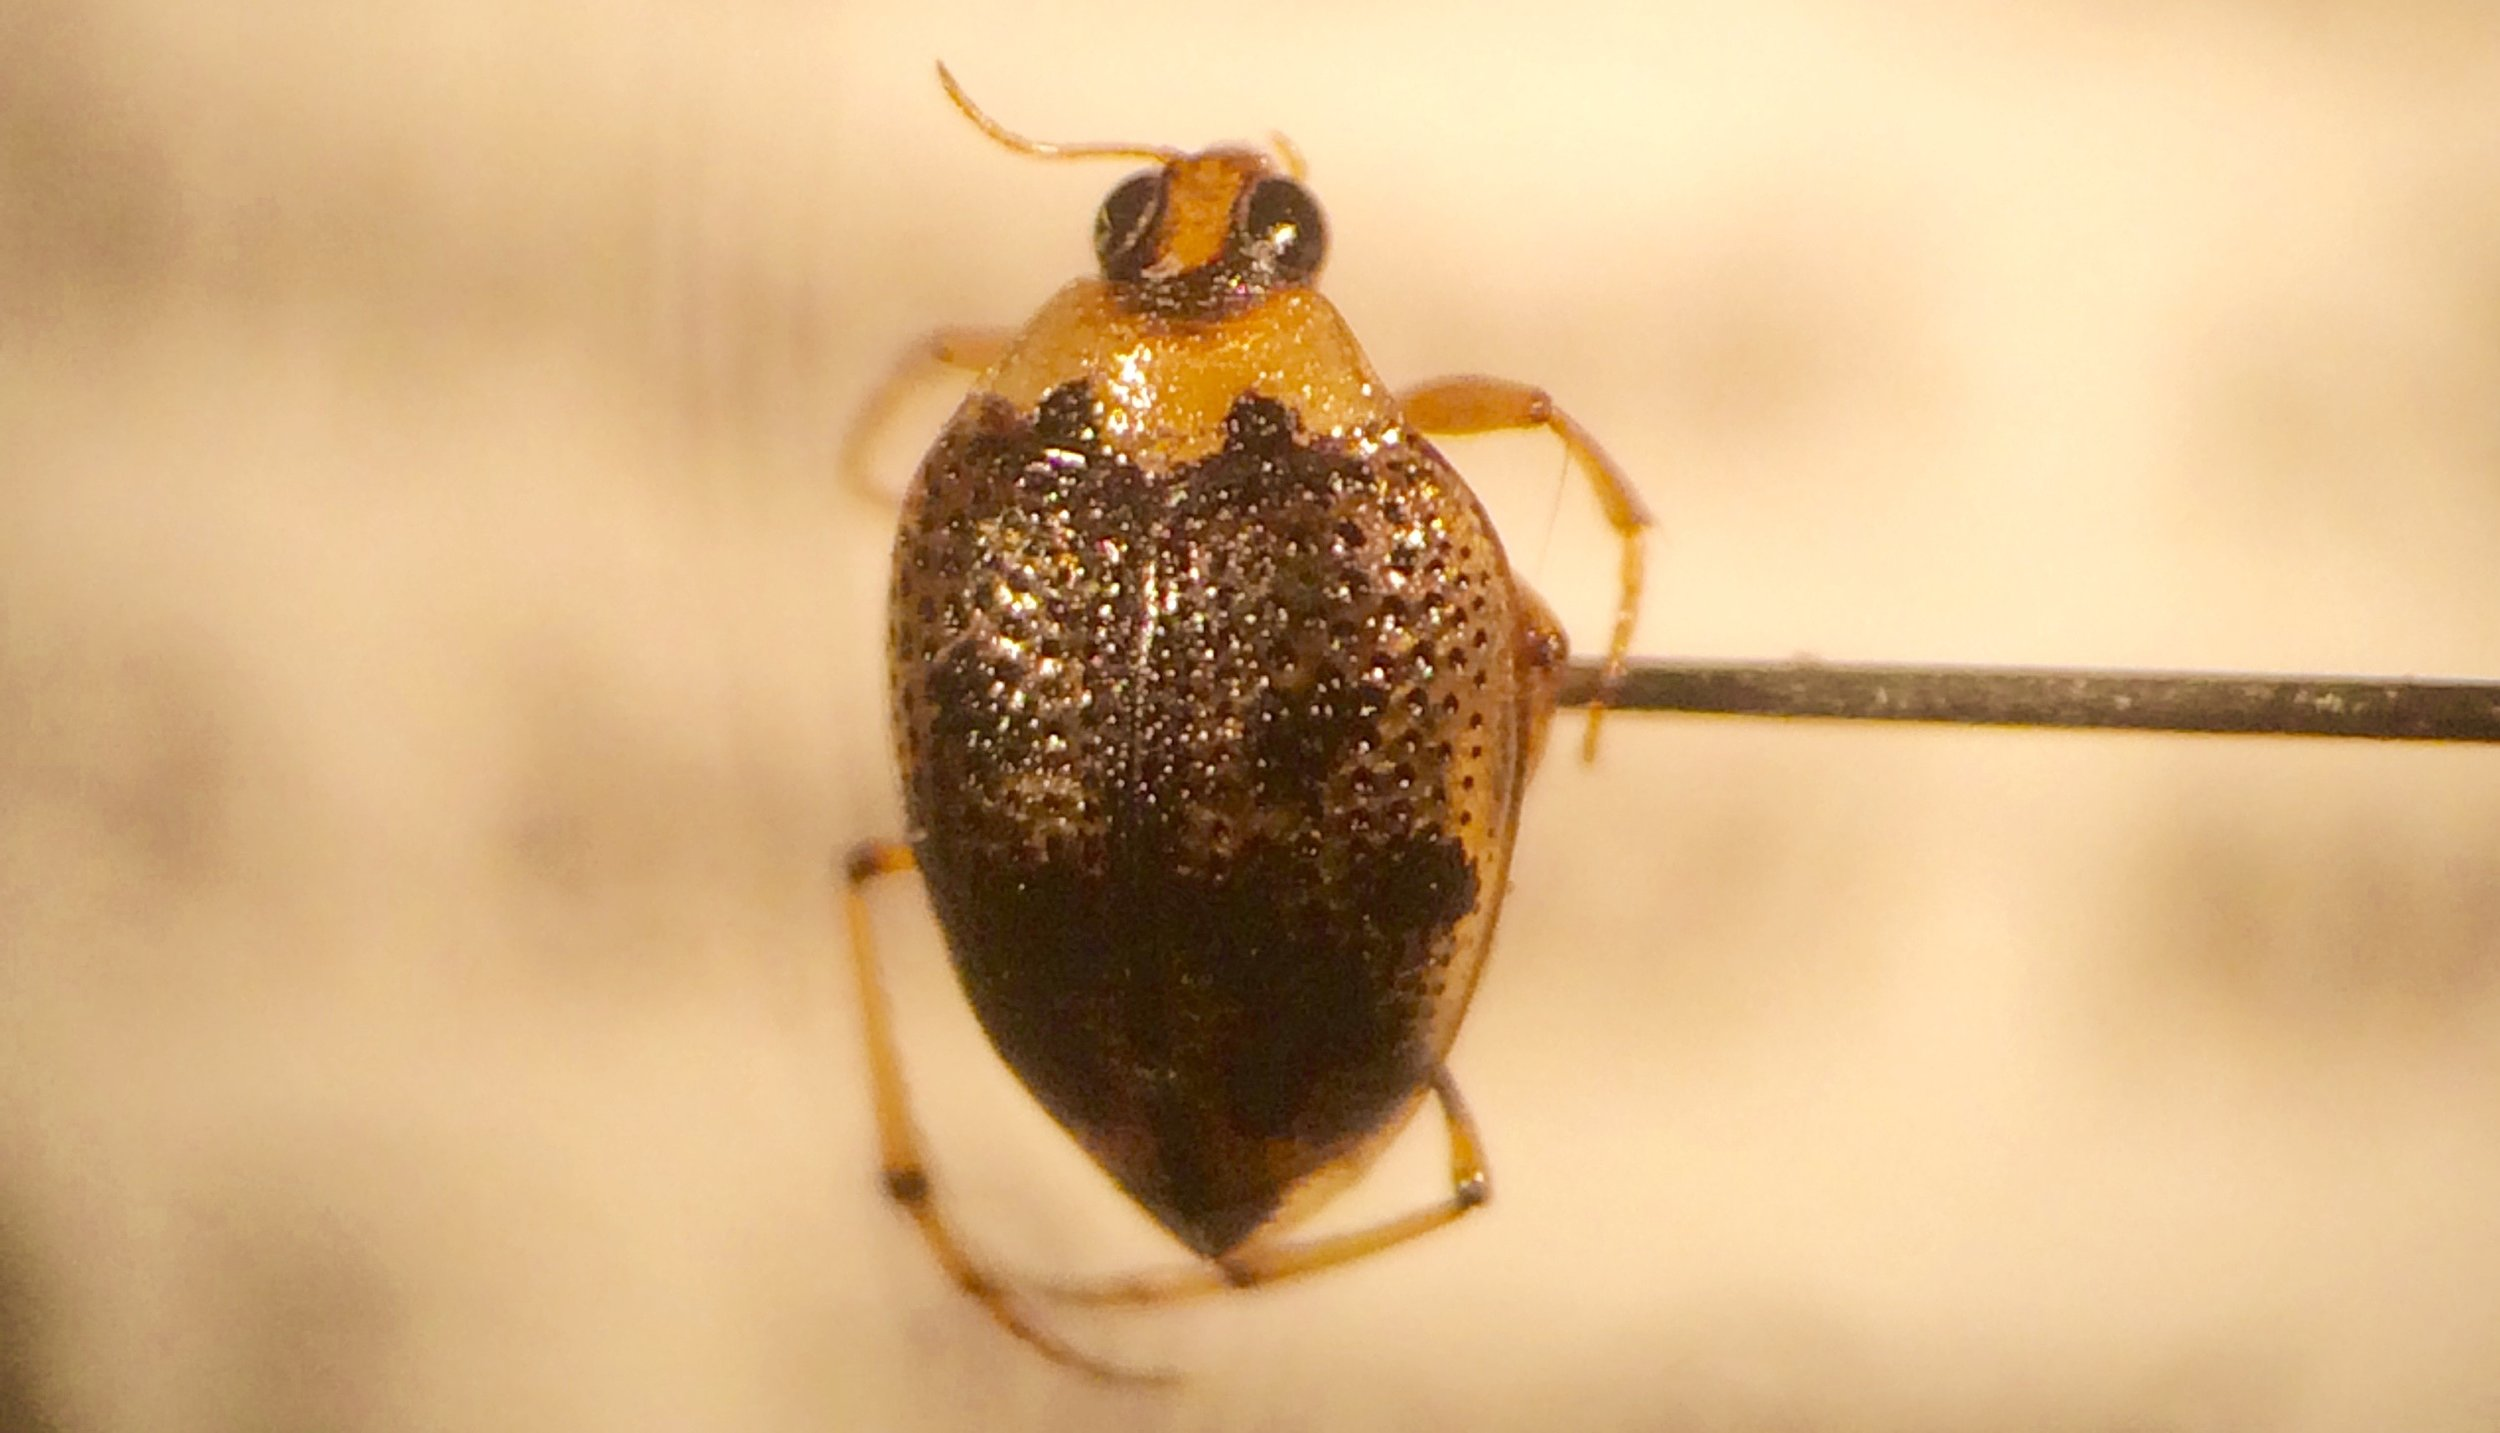 Close up of #10000 - Crawling Water Beetle, Peltodytes edentulus , collected at Bridgeport Township, Gloucester Co., NJ on 16 August 2016.